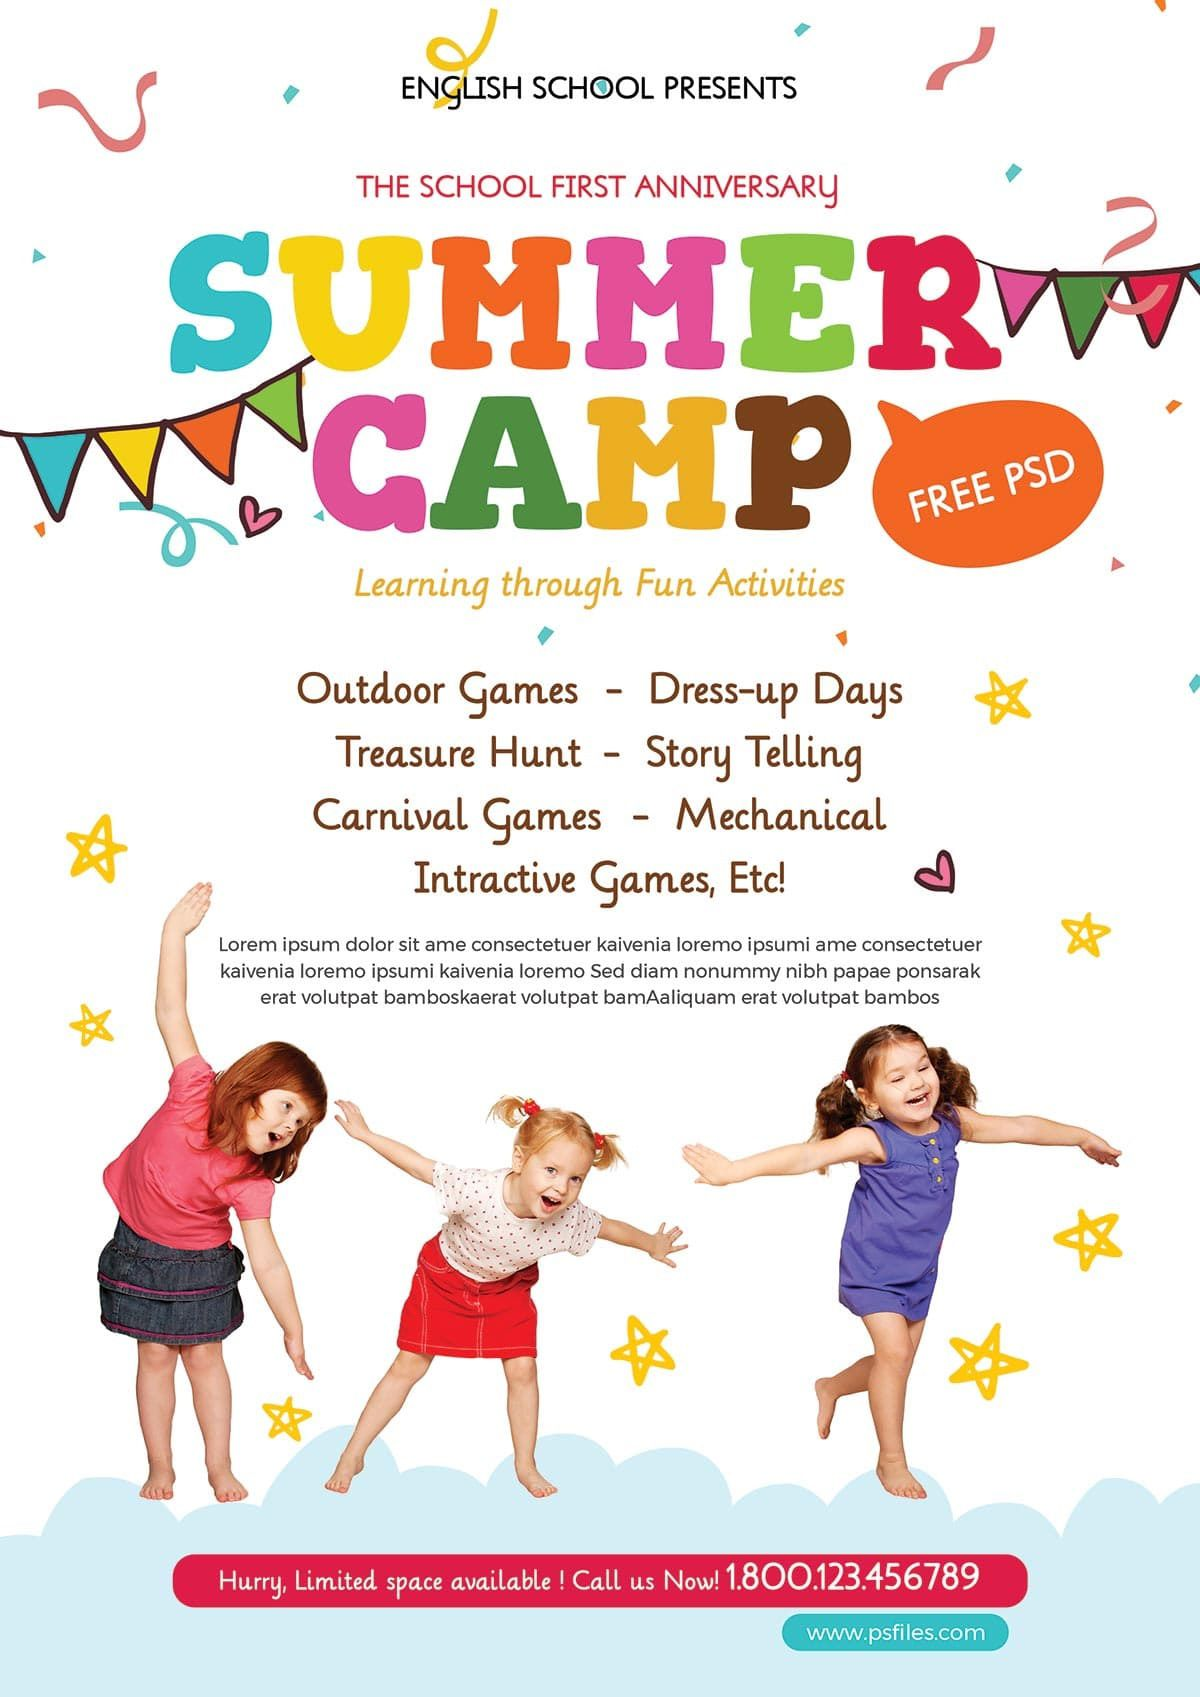 004 Awful Summer Camp Flyer Template Image  Day Microsoft Word BackgroundFull